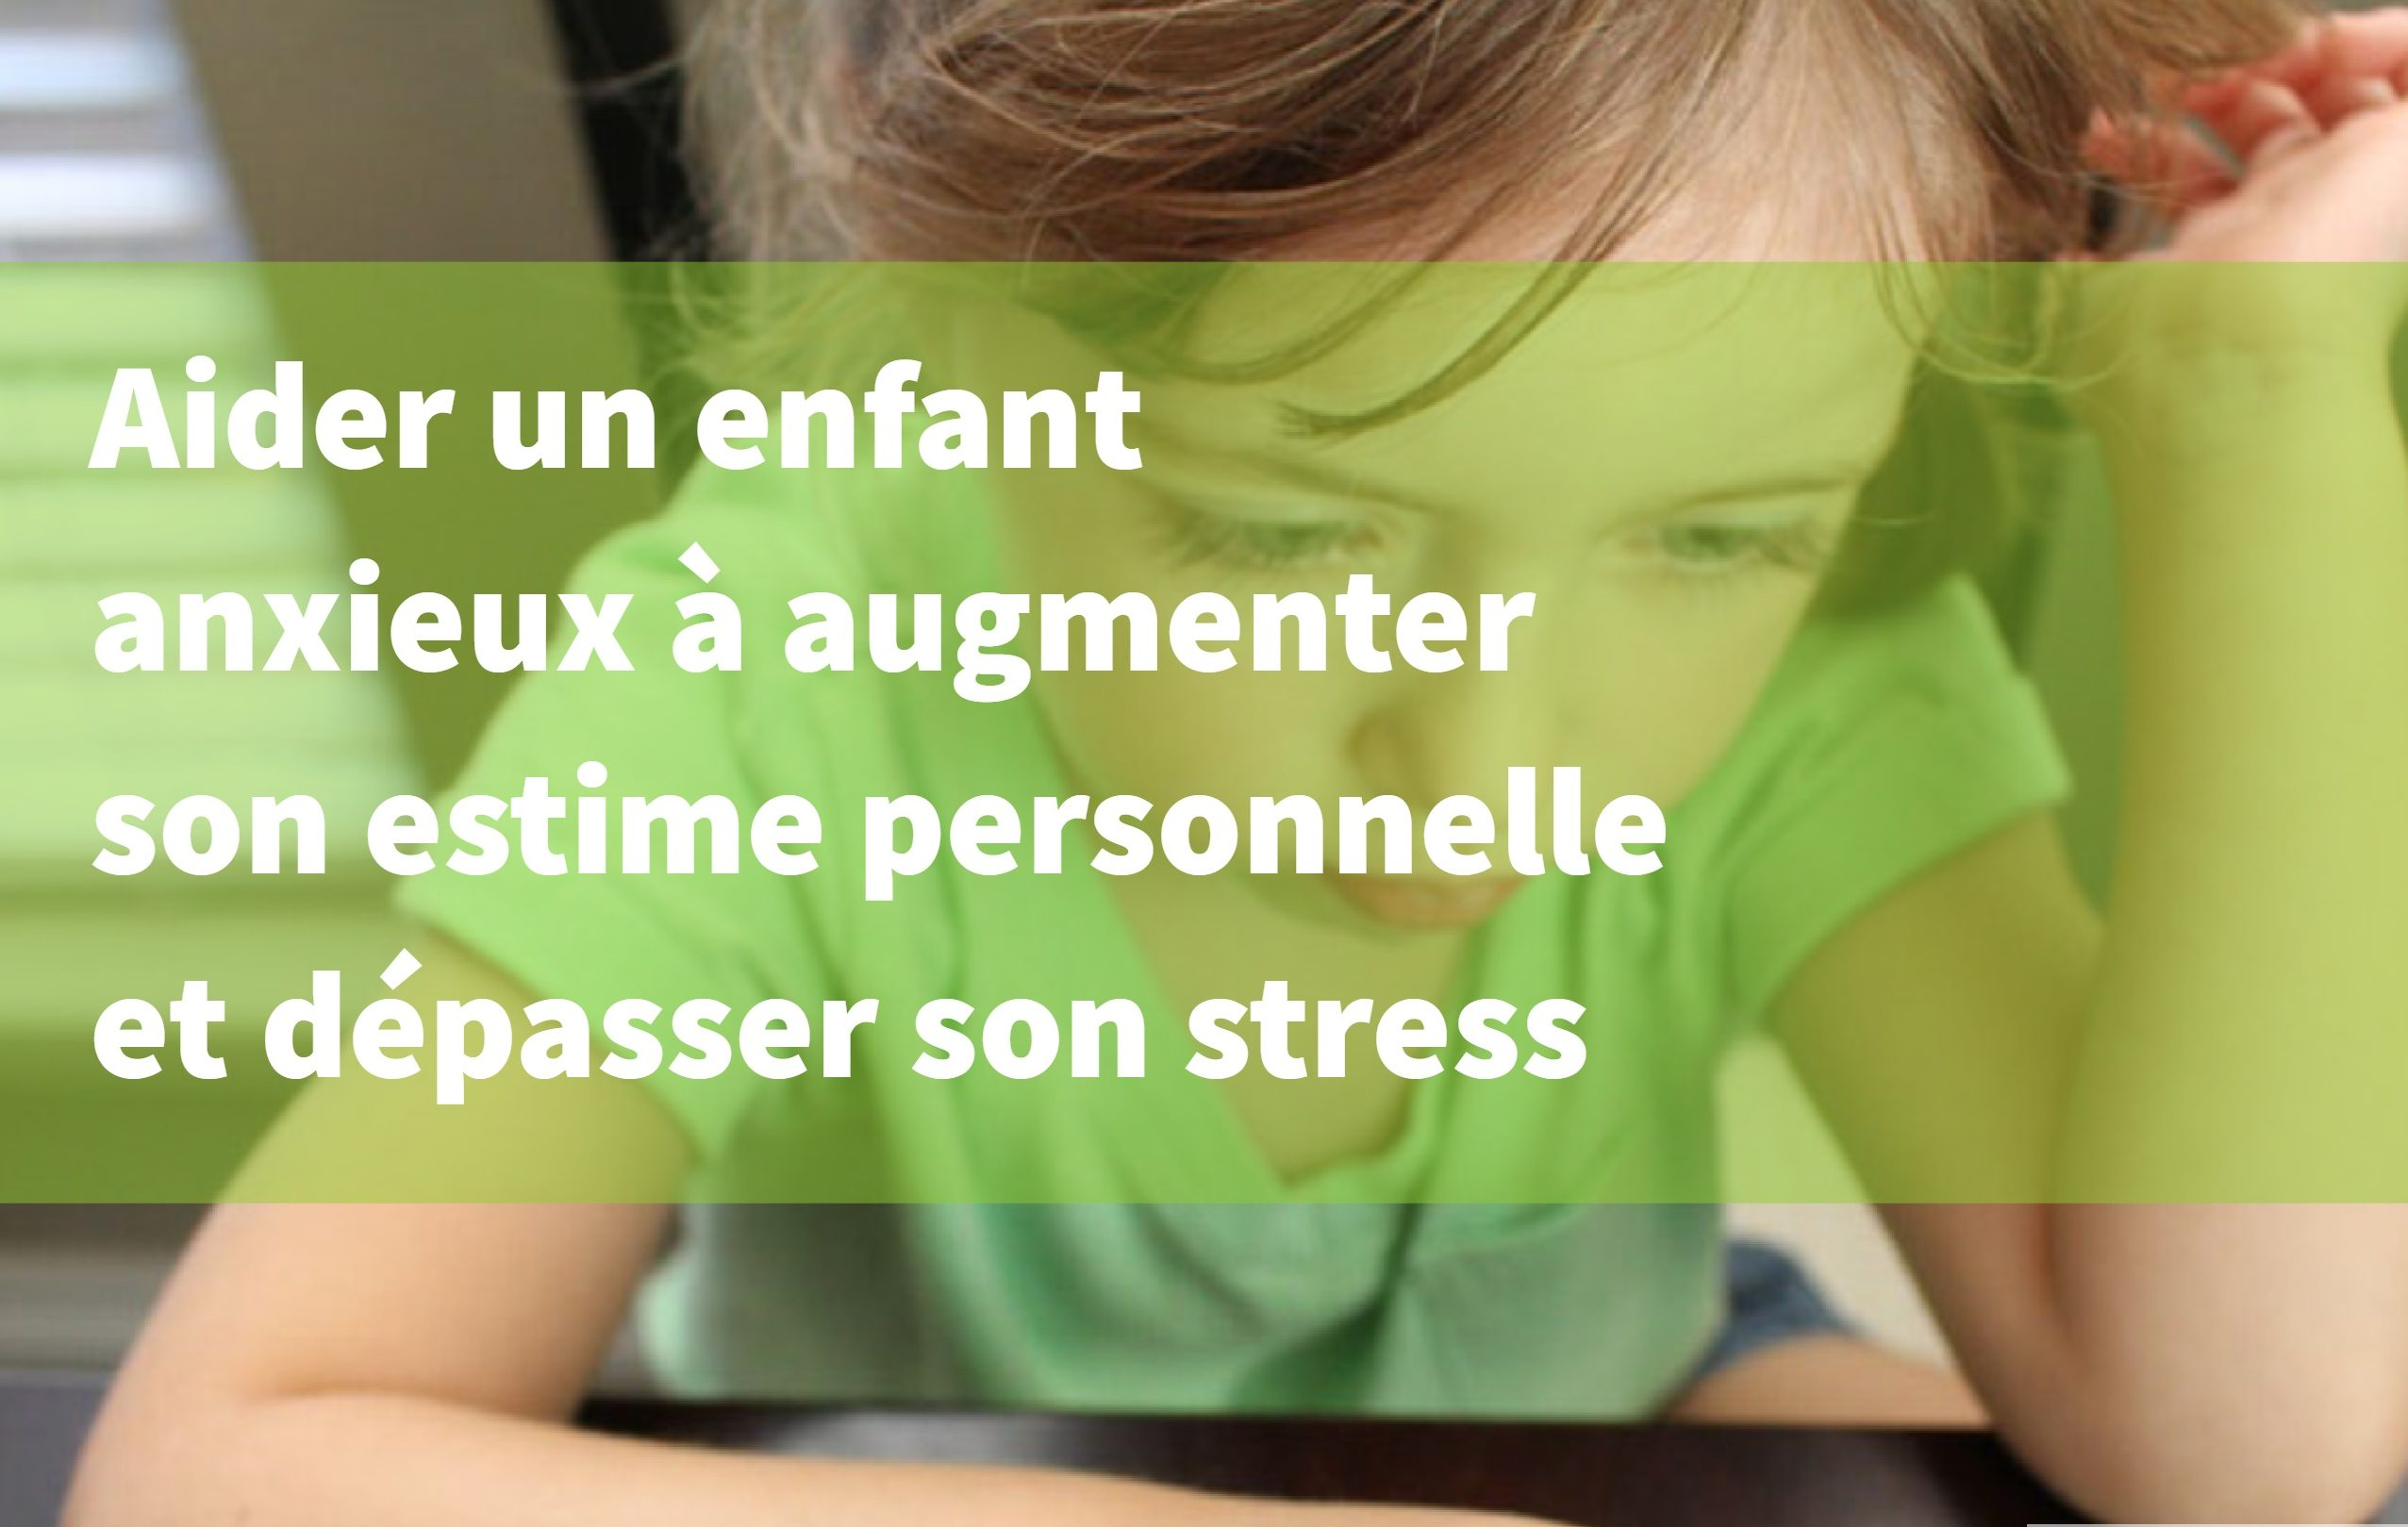 aider enfants anxieux stress